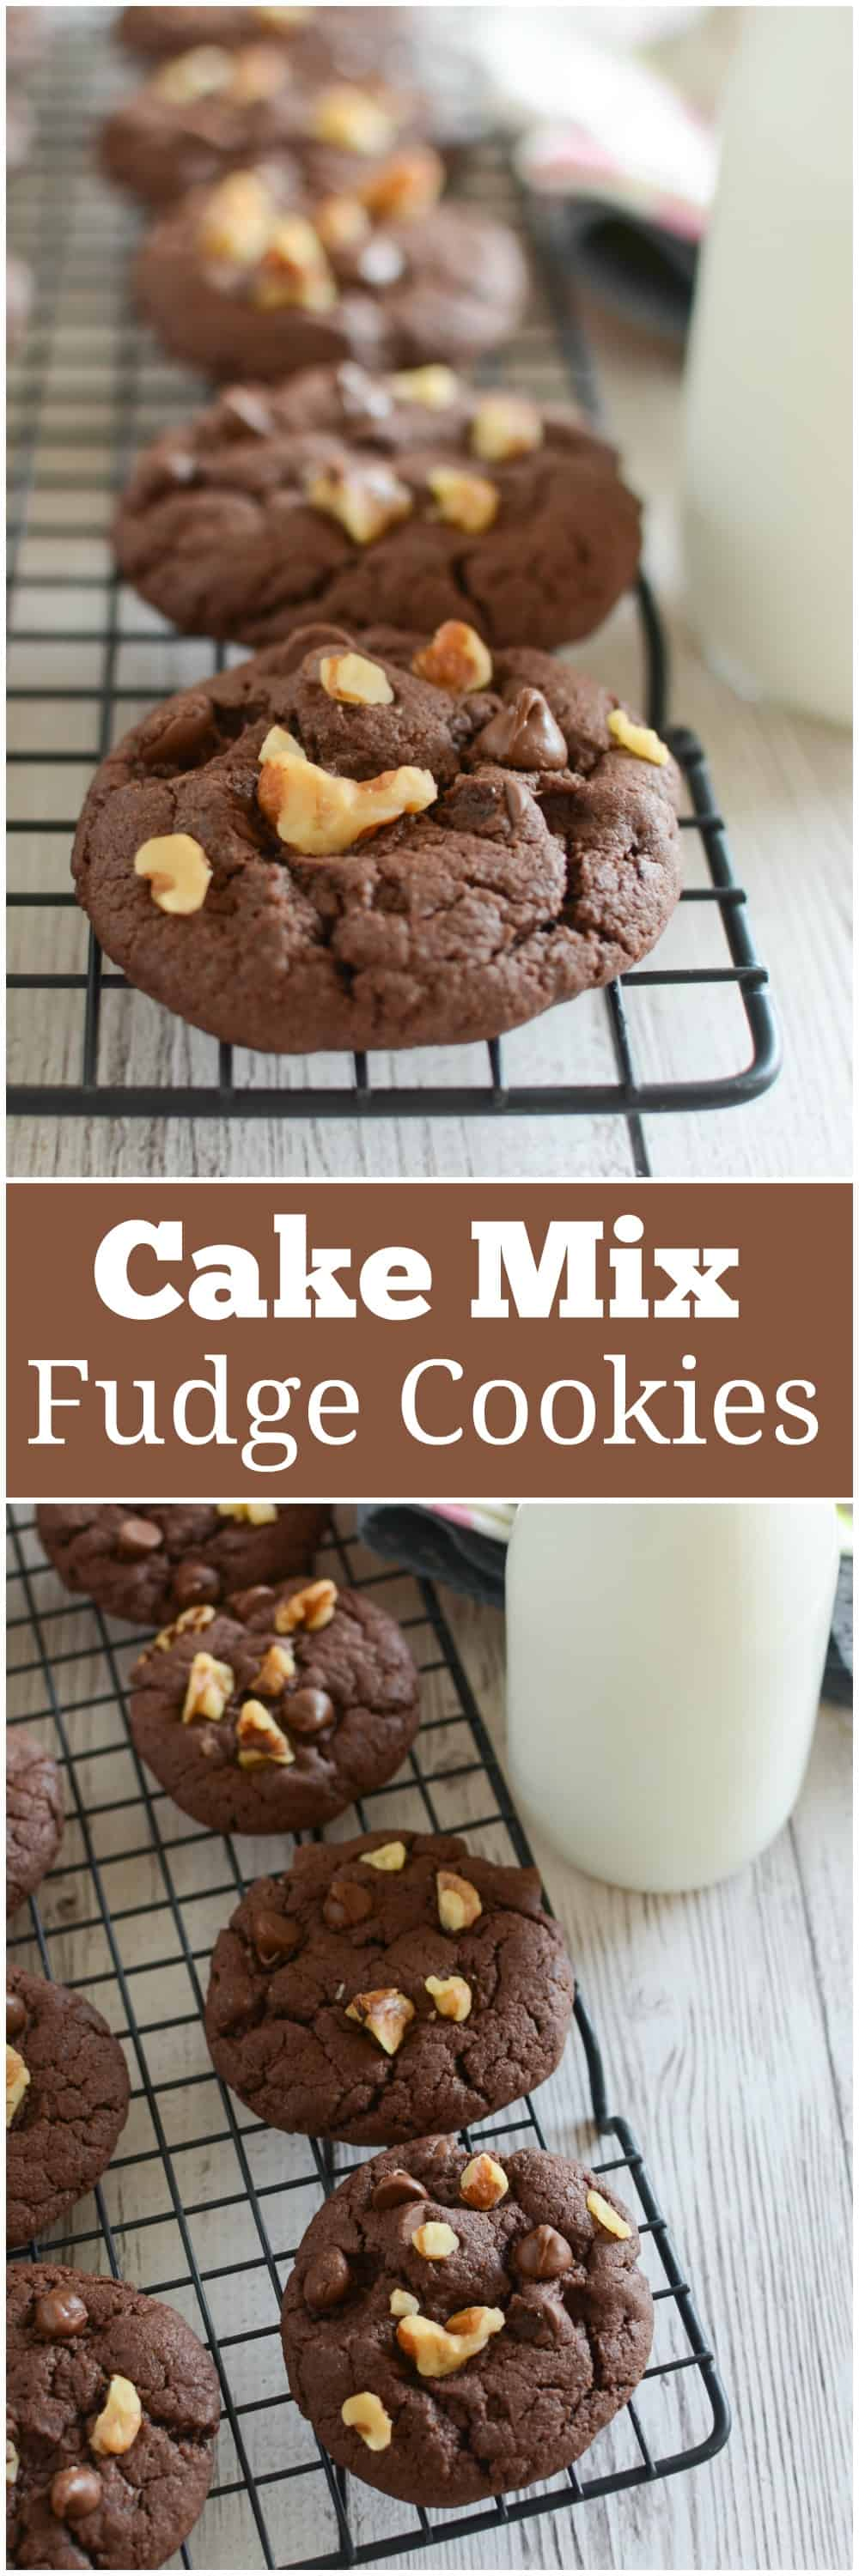 Cake Mix Fudge Cookies - fudge chocolate cookies filled with chocolate chips and walnuts! And they're so easy because they start with a boxed cake mix.